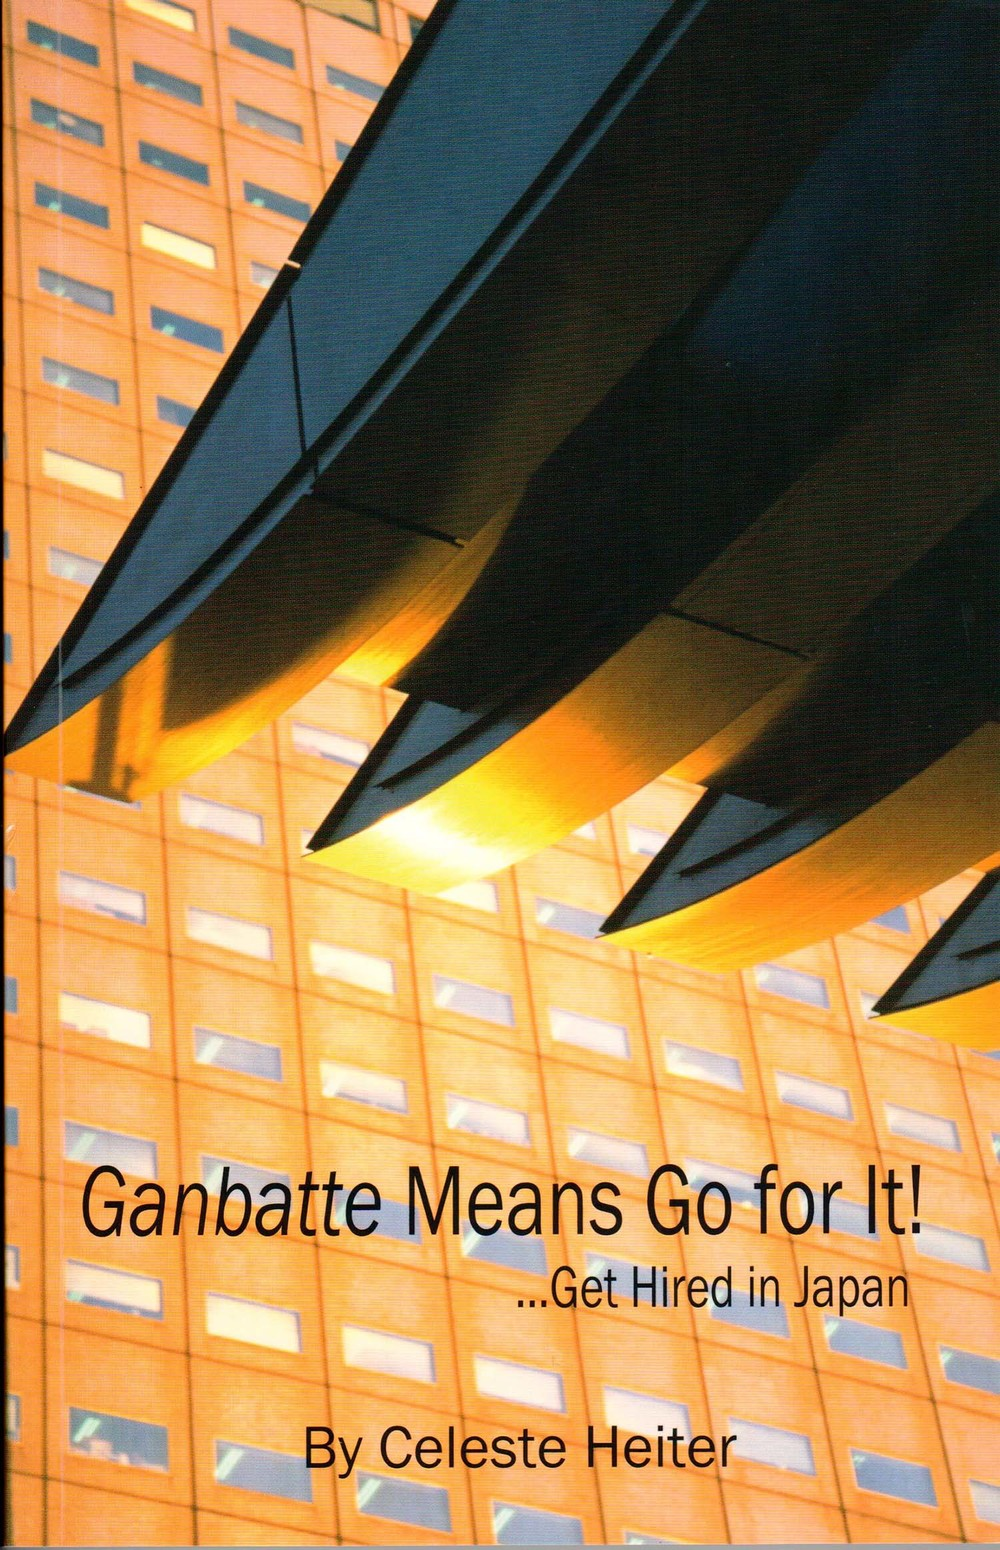 Ganbatte Means Go for It! ... Get Hired in Japan